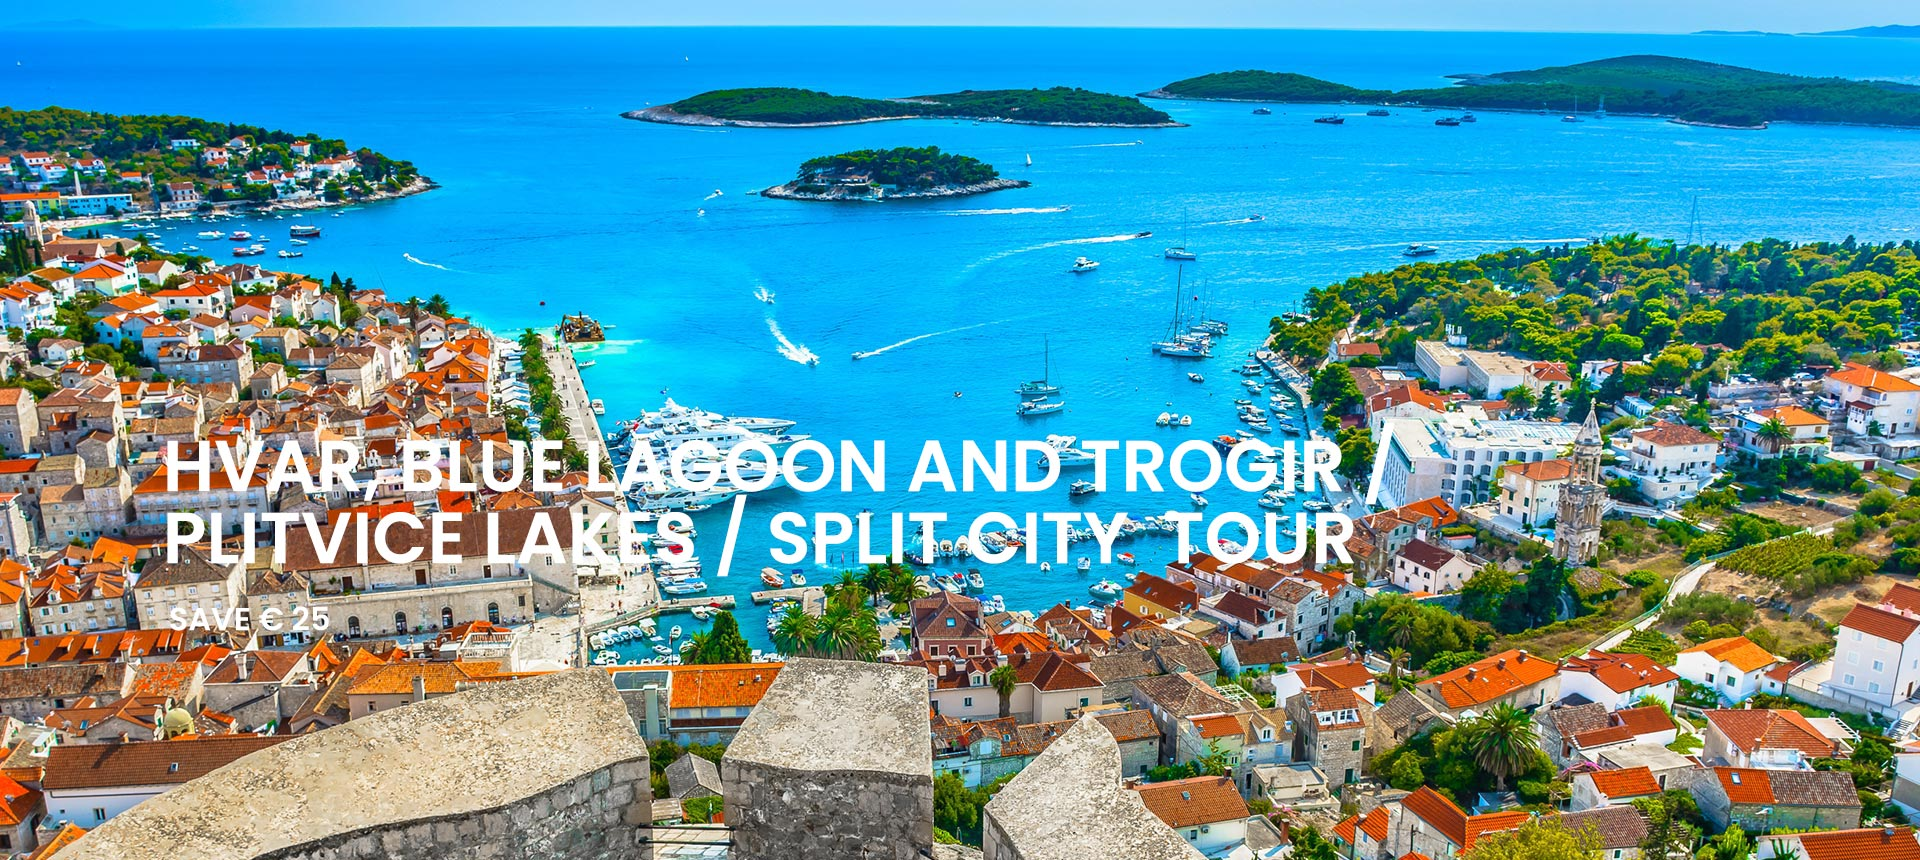 Super Combo Tour: Blue lagoon, Hvar & Trogir, Plitvice lakes and Split city tour